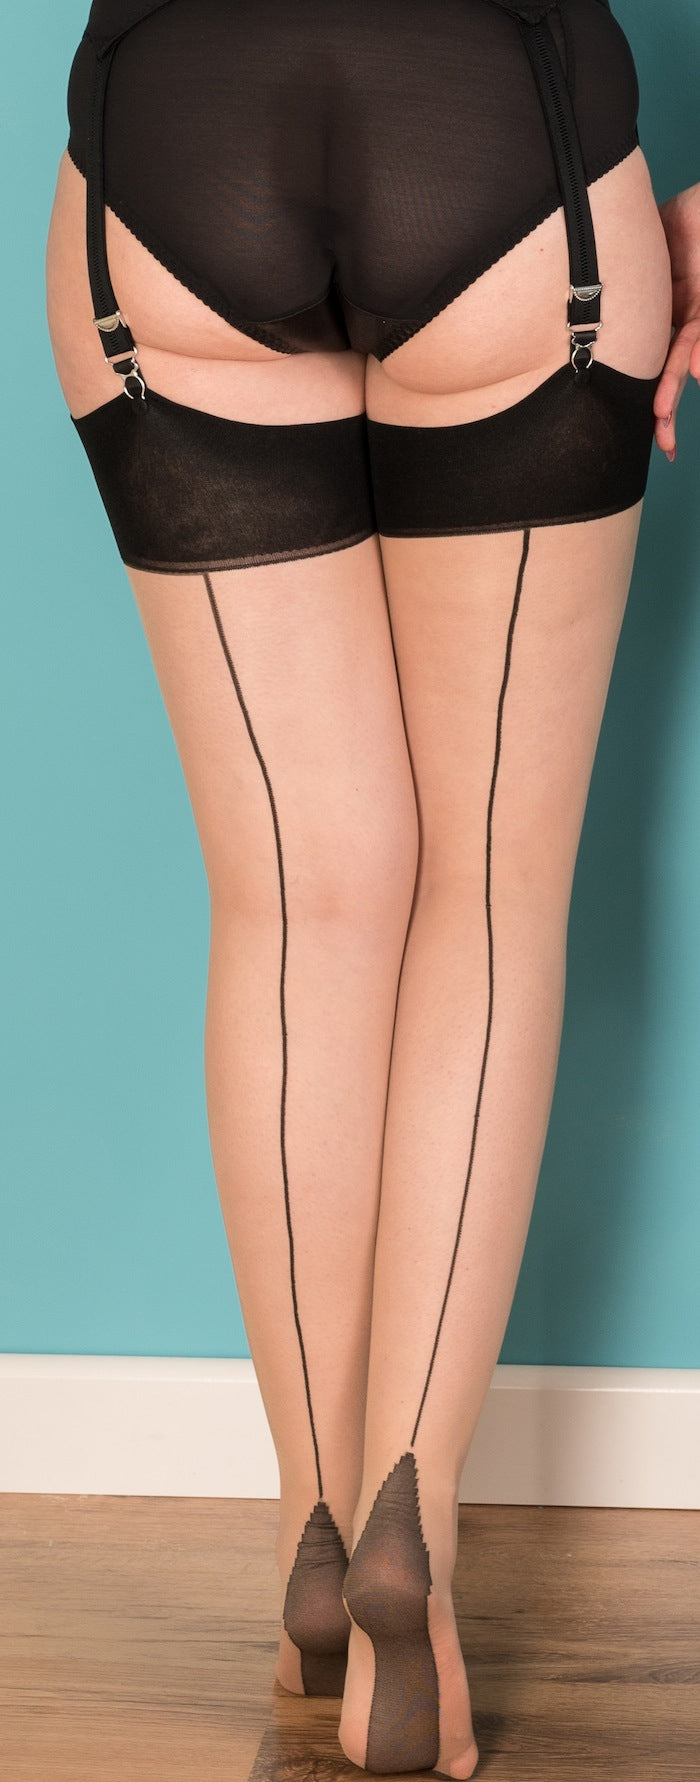 Glamour Stockings in Champagne with Black Seams